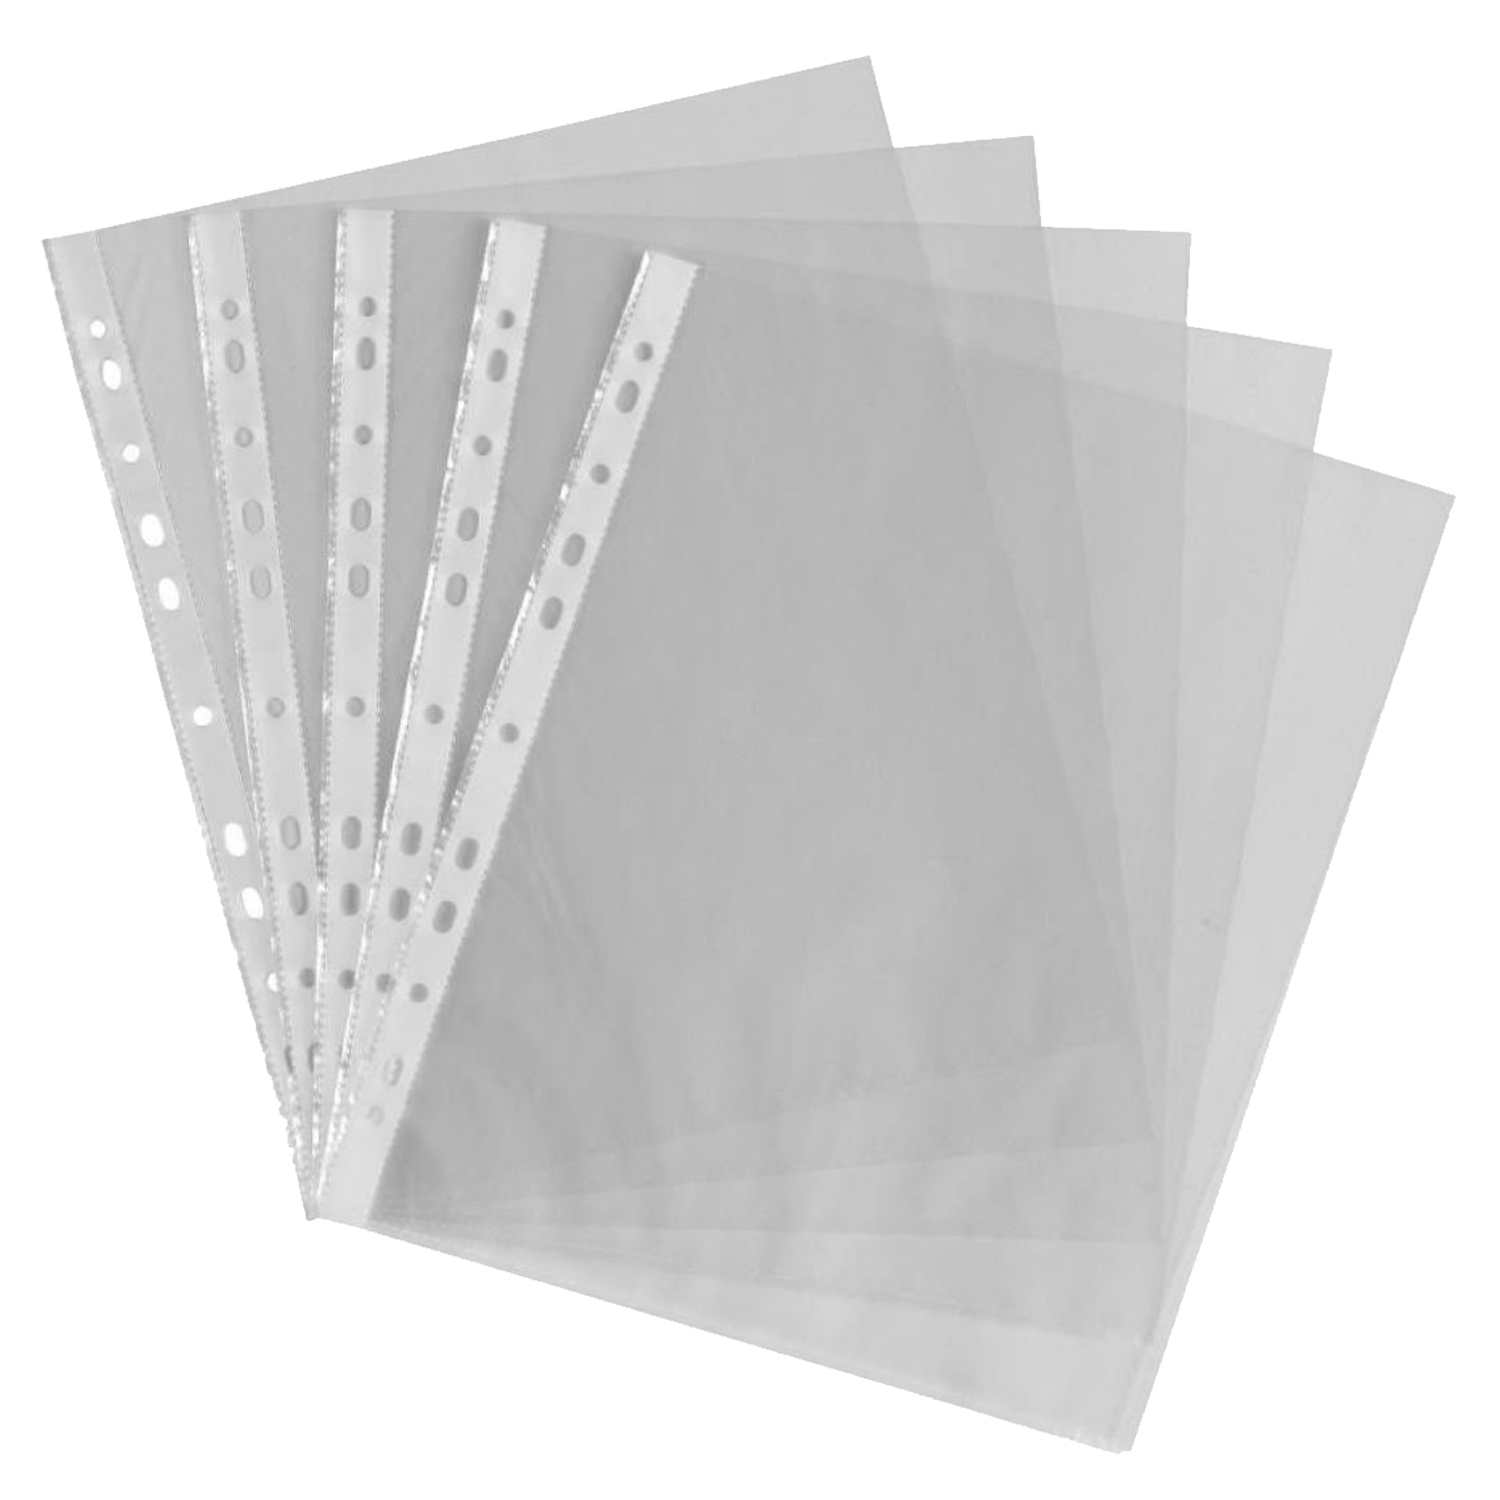 A4 Clear Plastic Punched Pockets / Wallets / Sleeves 200 Pcs